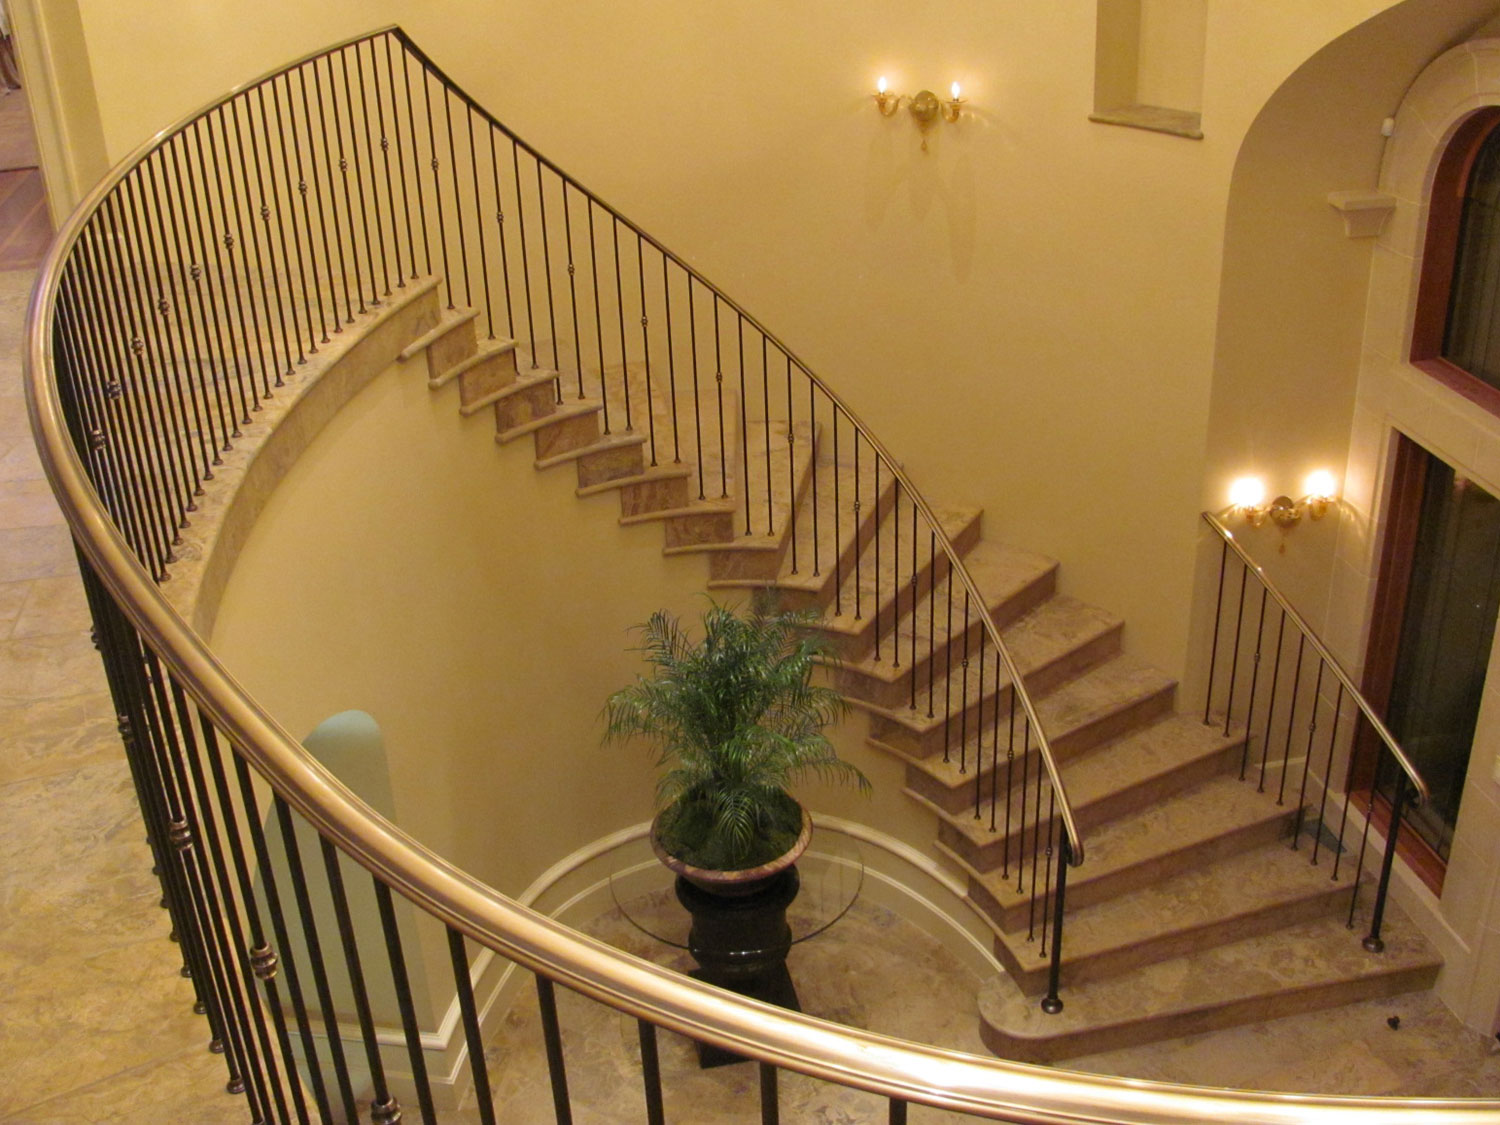 Elegant Pitch and Curved Railing - Full Overhead View - Seattle, WA